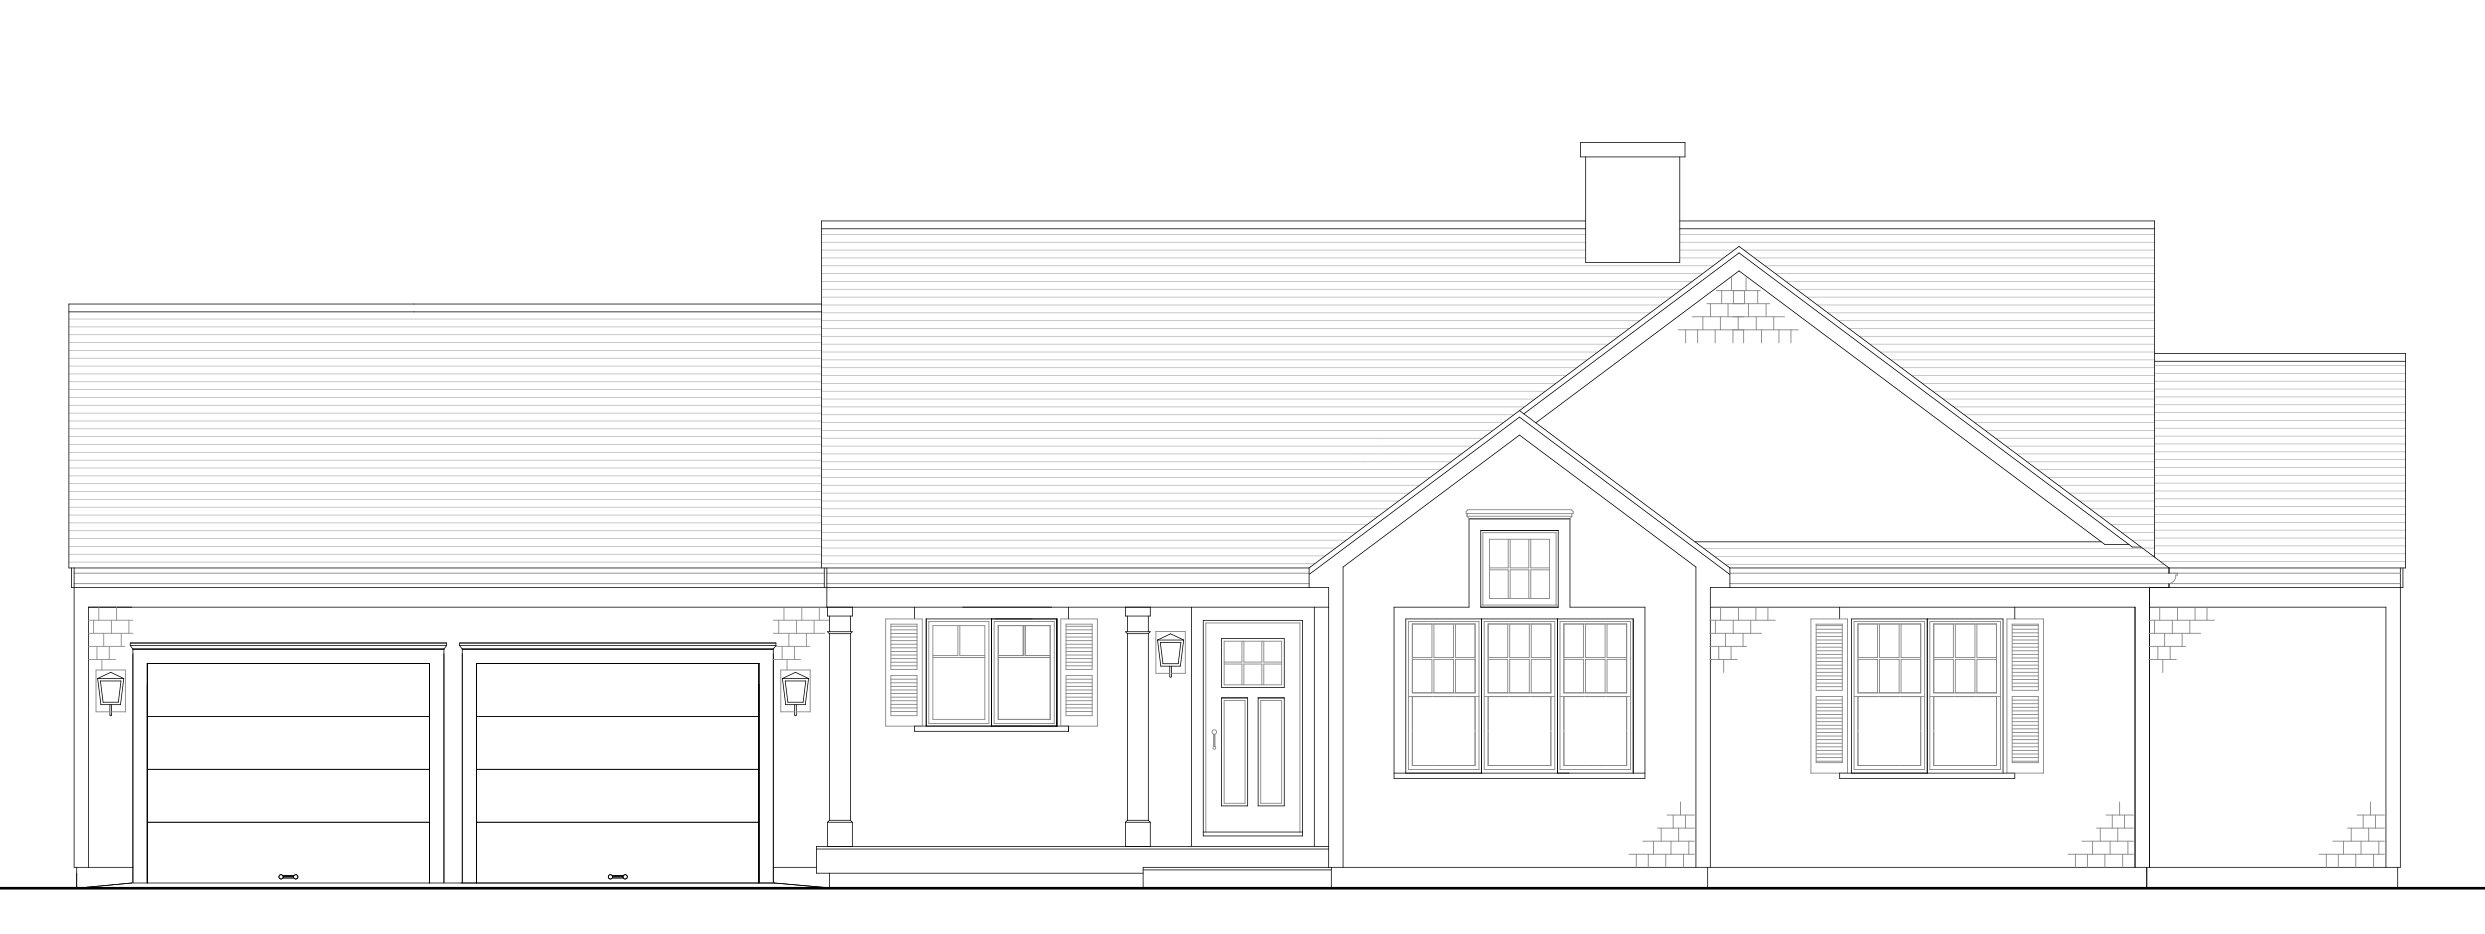 2019-09-17 - 63 sgd front view from plans.jpg